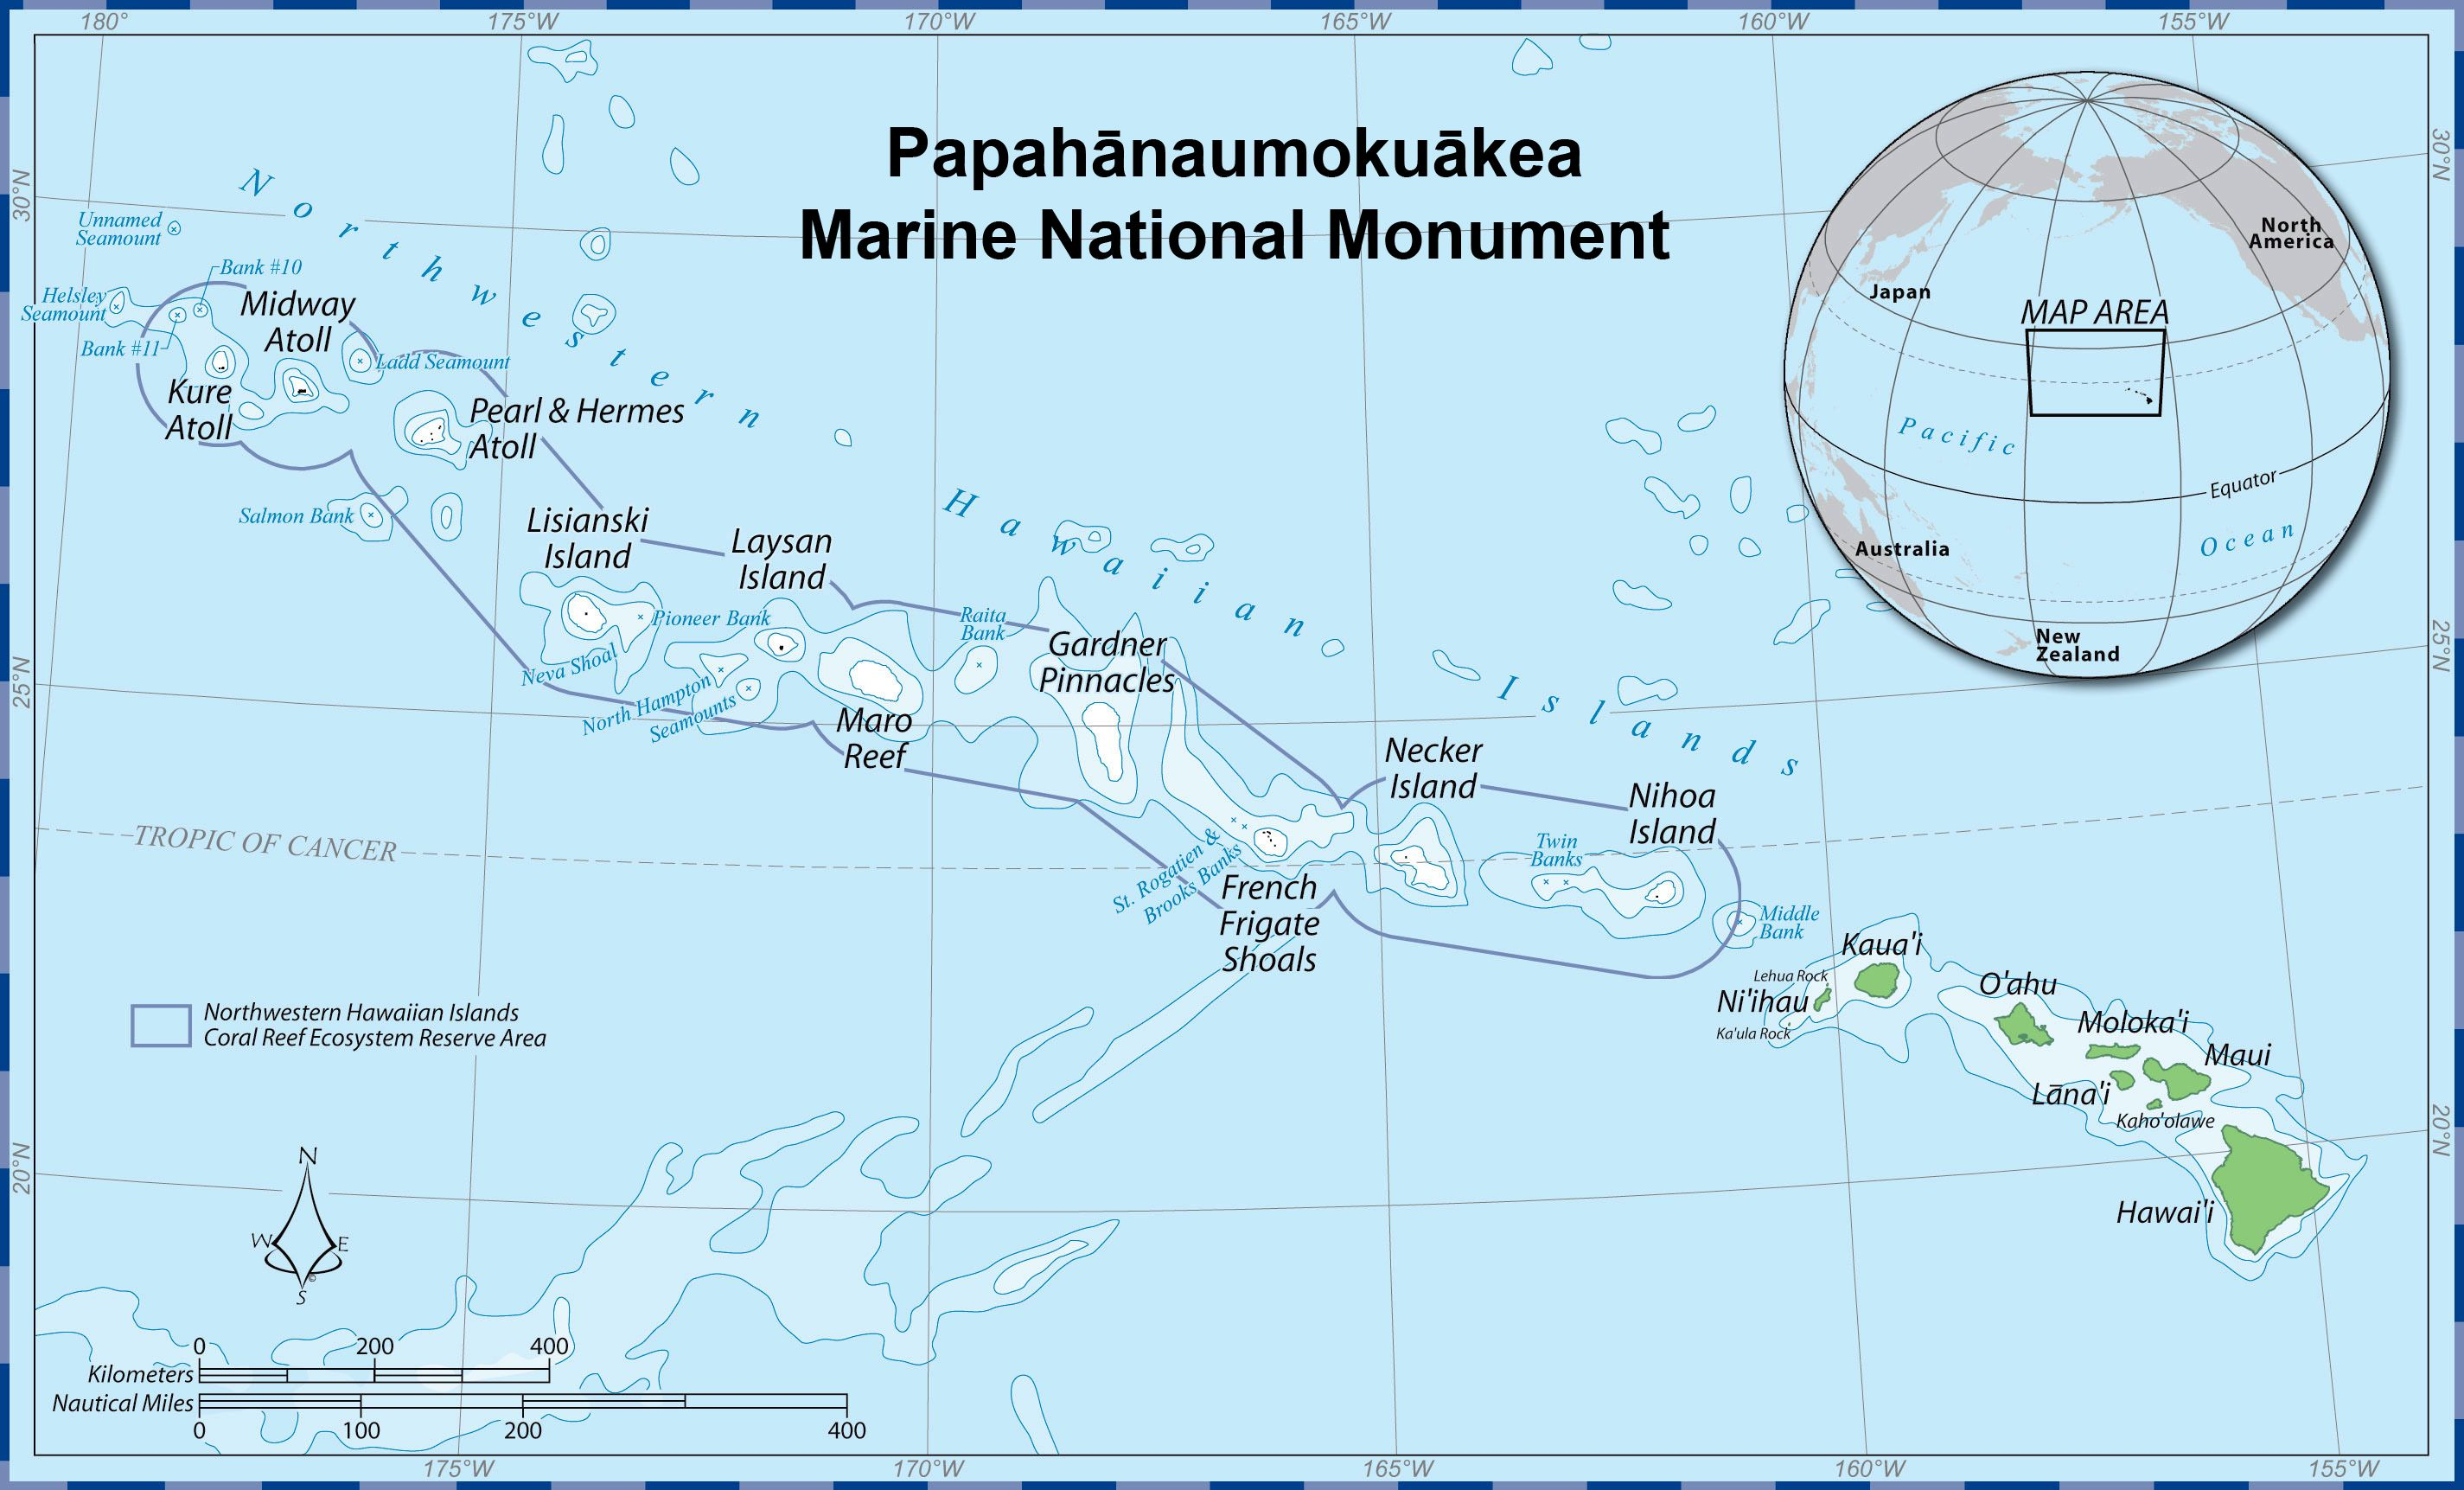 map of the papahanaumokuakea marine national monument in the